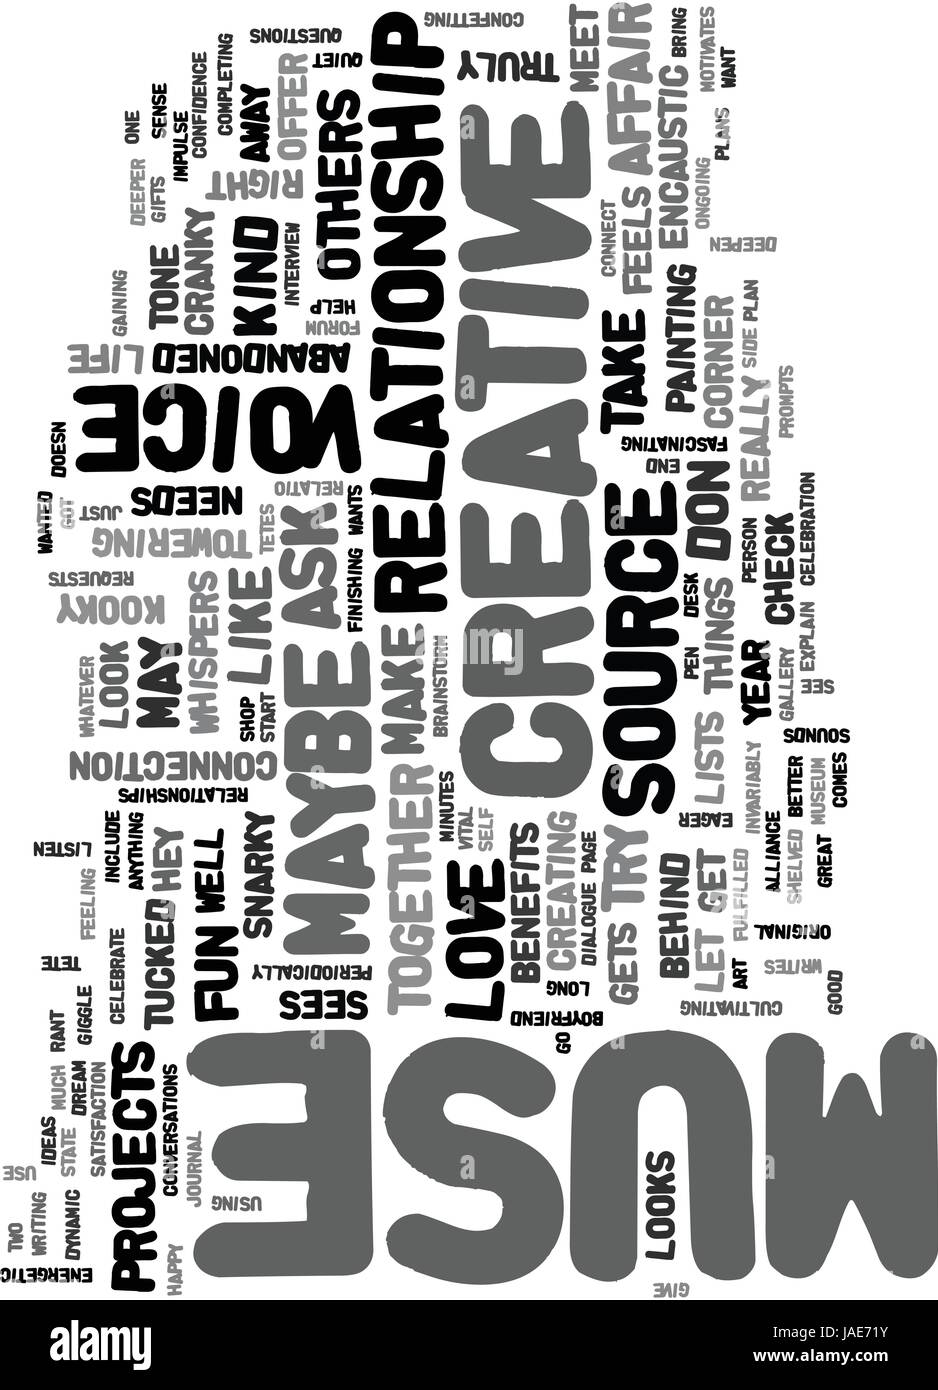 Your Love Affair With Your Muse Text Word Cloud Concept